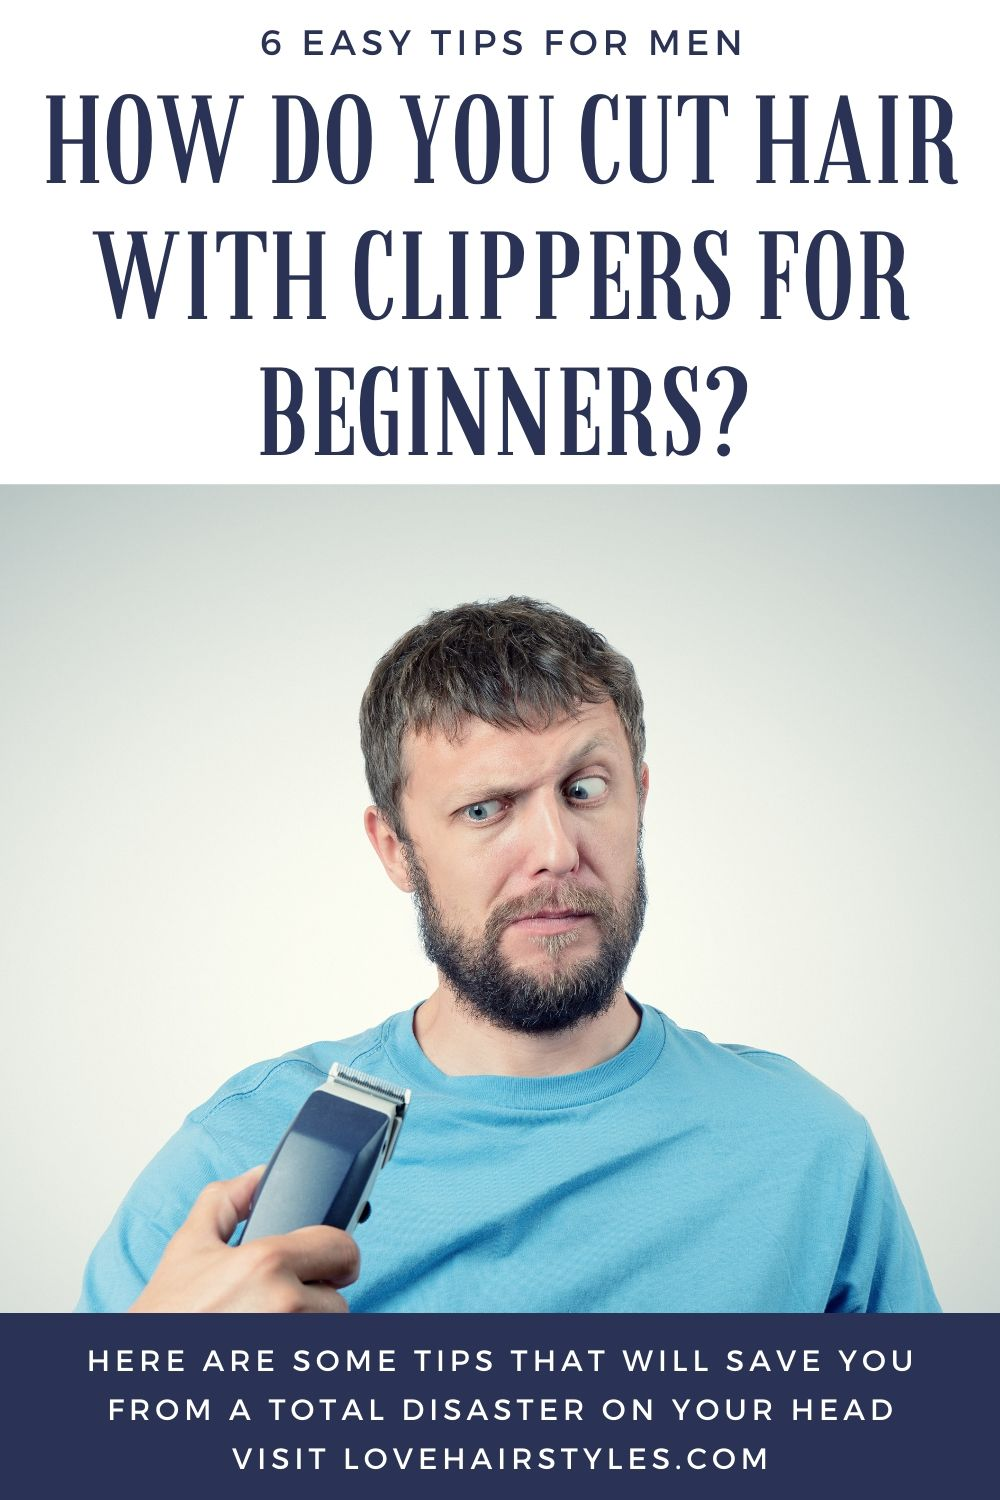 Using Hair Clippers to Cut Your Own Hair - 6 Tips for Beginners